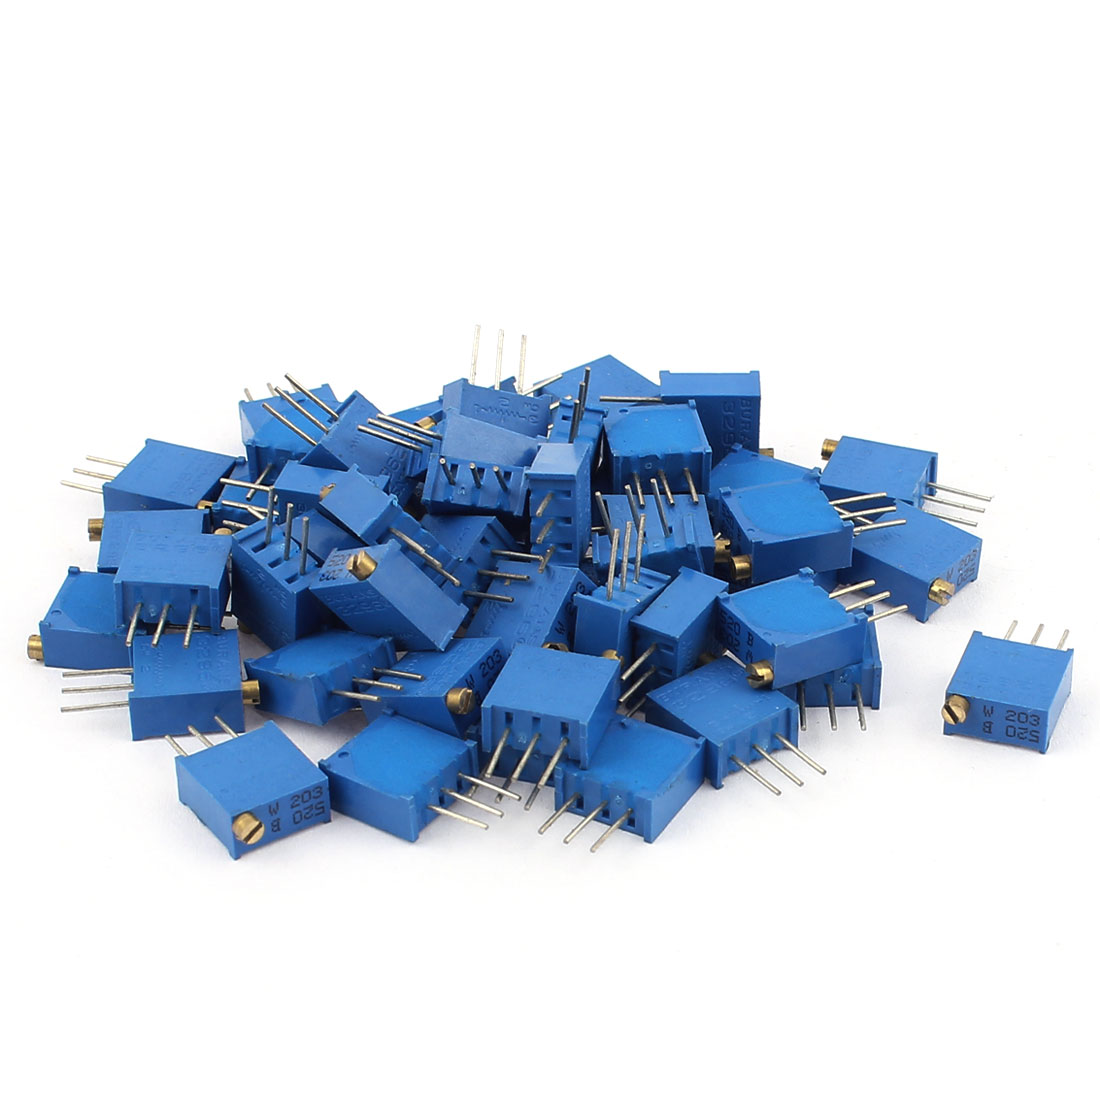 50Pcs 3296W-203 20K Ohm Resistor Trim Pot Potentiometer Trimmer Blue